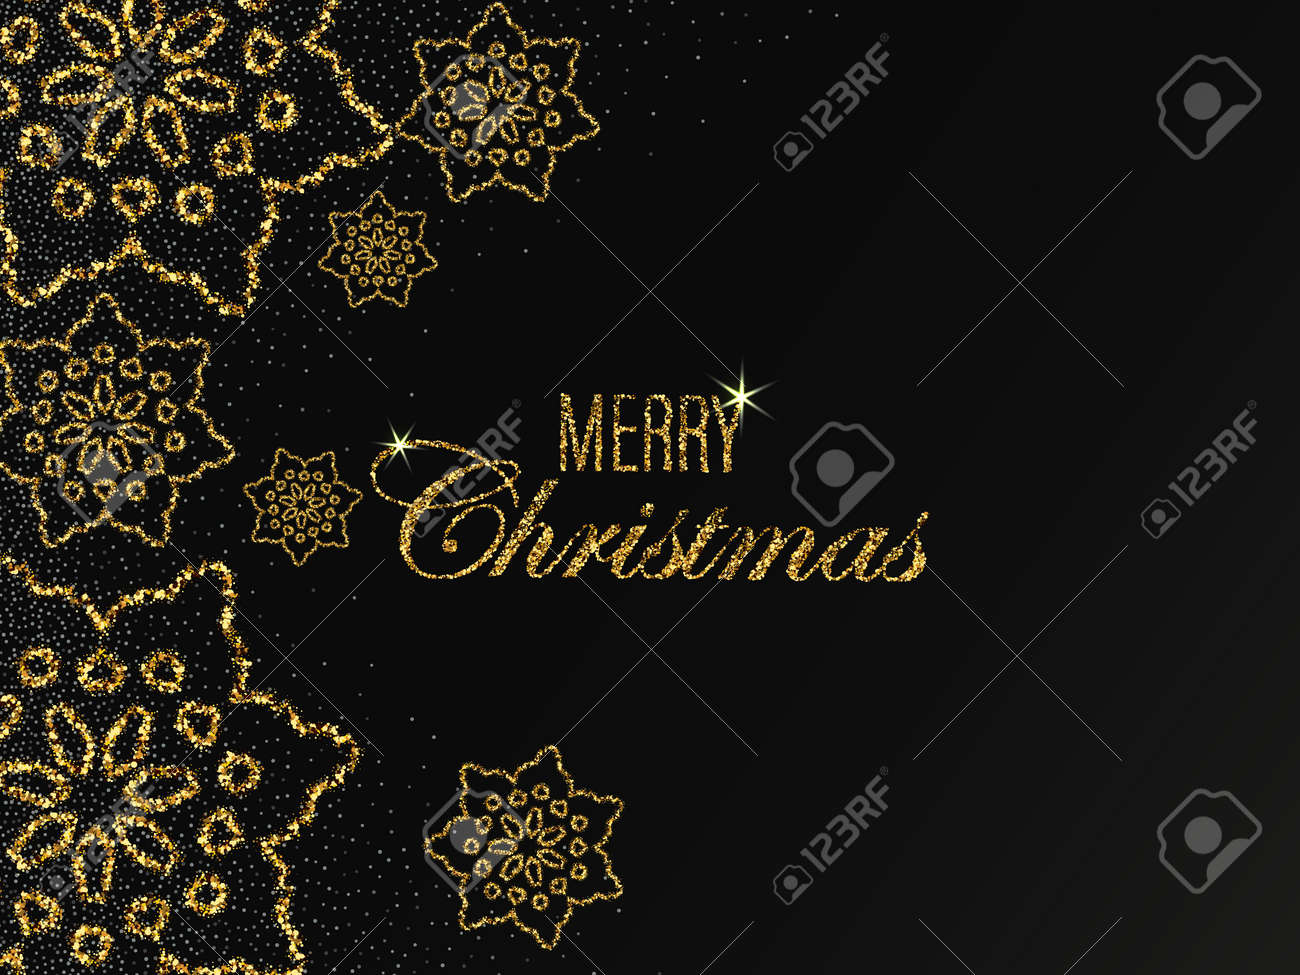 Christmas vector background with shining golden snowflakes and snow. Merry Christmas card illustration on black background. Sparkling golden snowflakes with glitter texture - 159905243